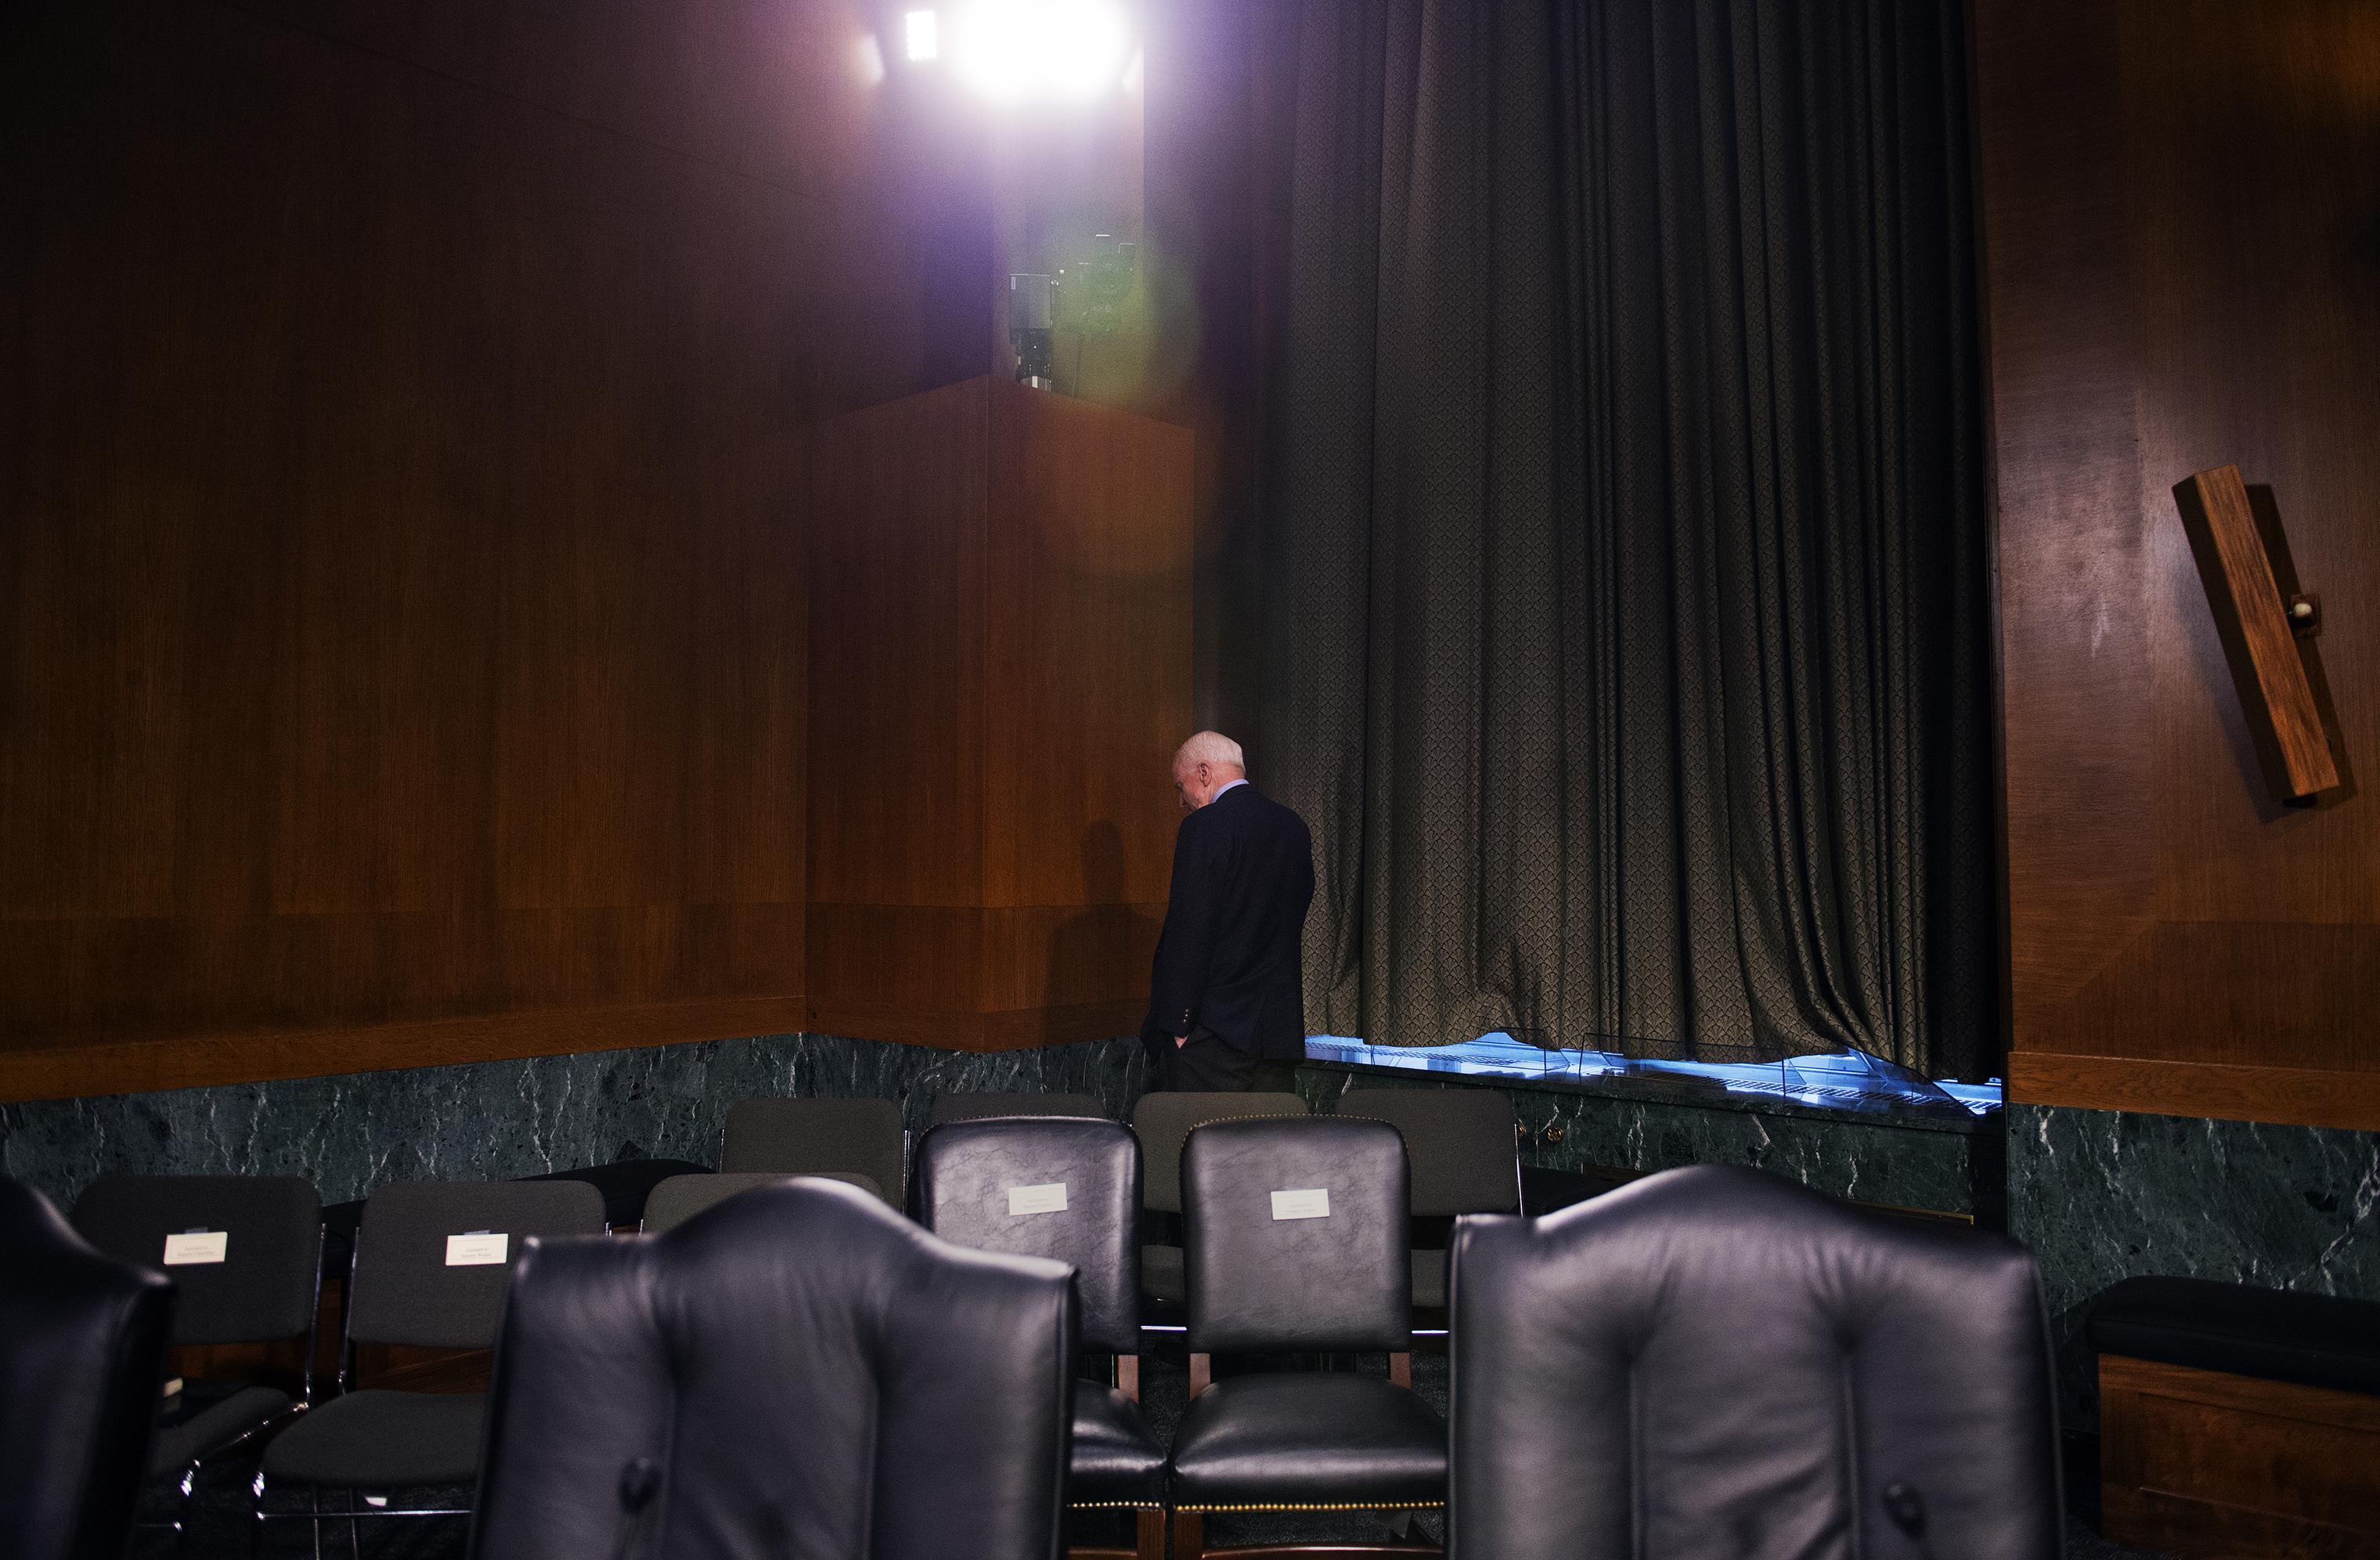 Sen. John McCain talks on the phone before a Senate Armed Services Committee hearing.